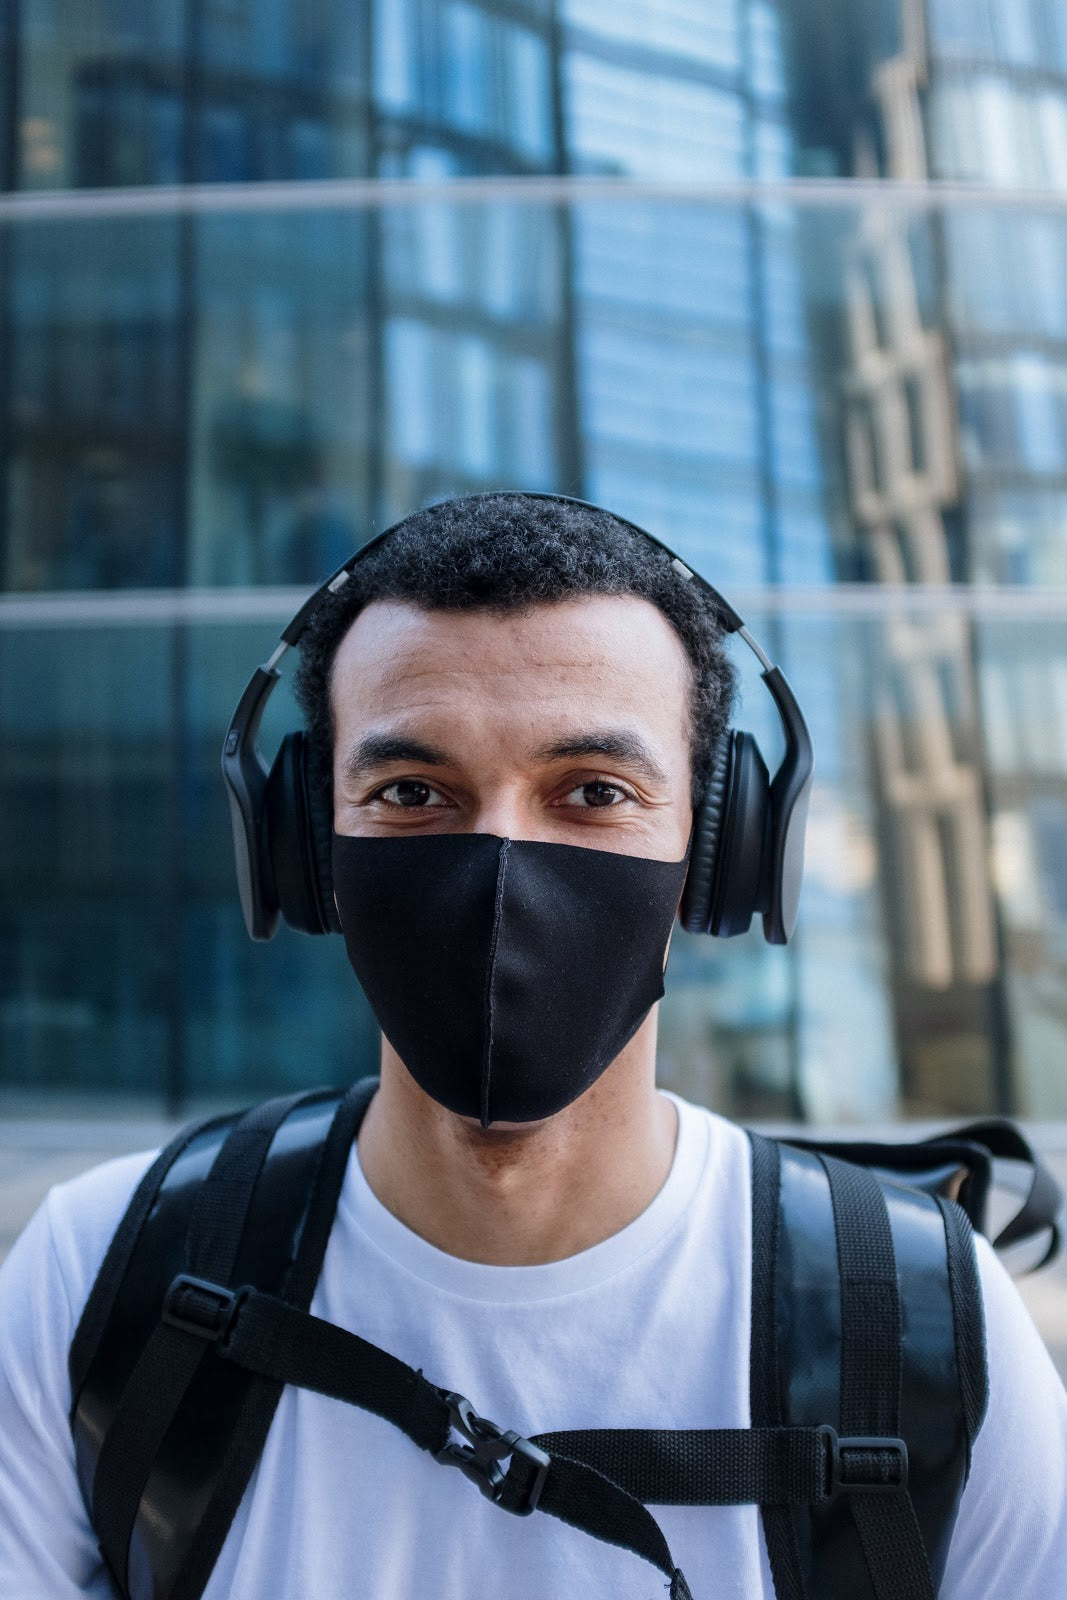 Man in white t-shirt with black backpack wearing a black face mask and headphones in front of a glass building | Style Standard